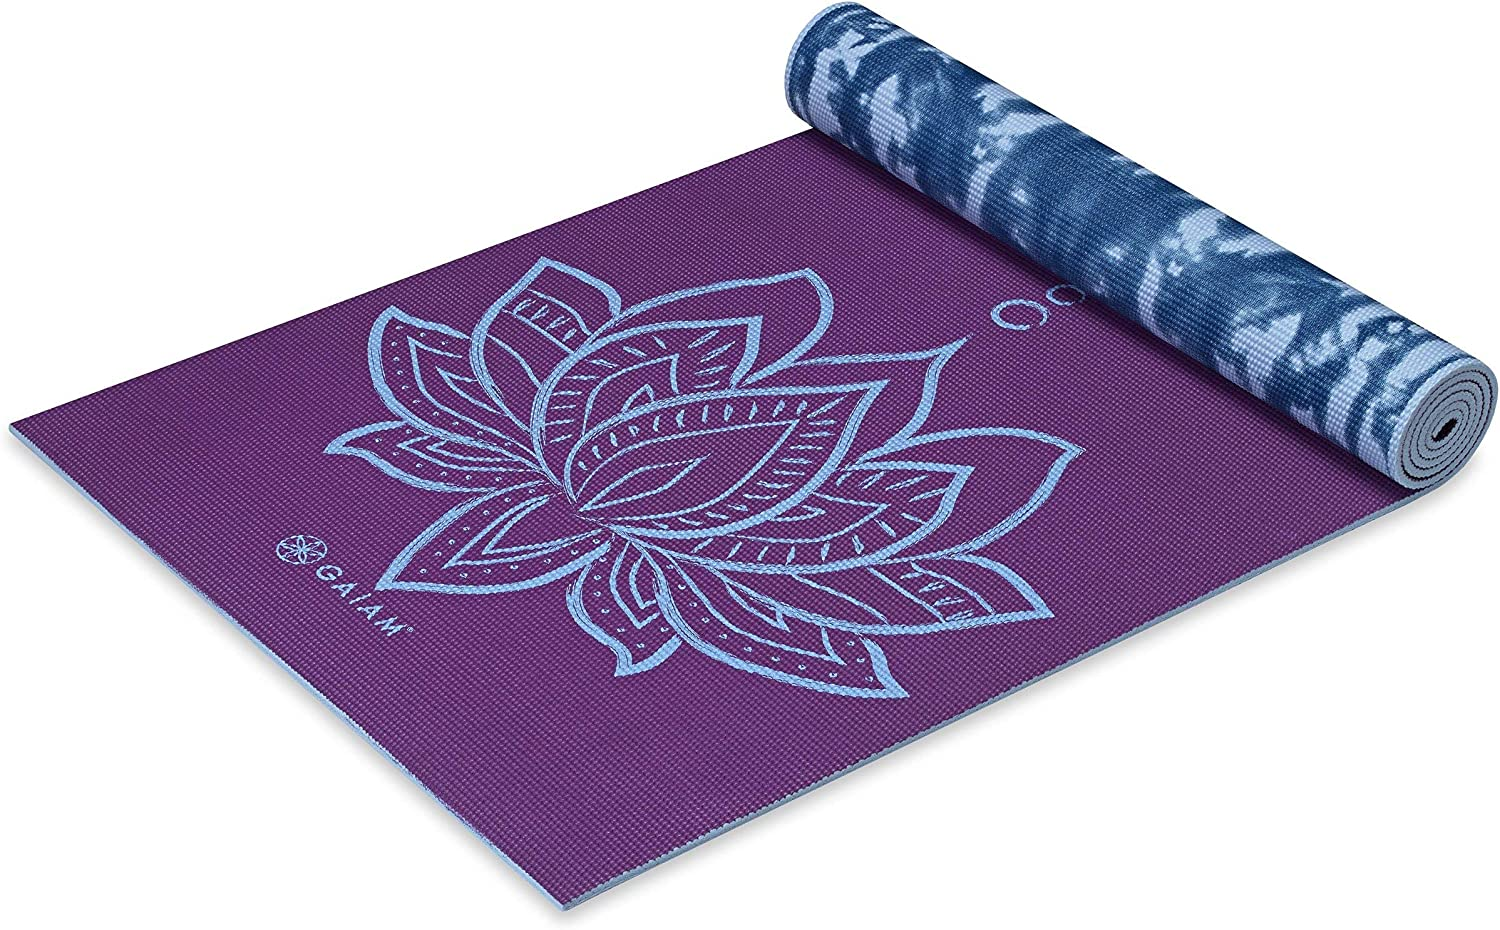 Buy Gaiam Yoga Mat - Premium 6mm Print Reversible Extra Thick Non Slip  Exercise & Fitness Mat for All Types of Yoga, Pilates & Floor Workouts (68  x 24 x 6mm Thick)